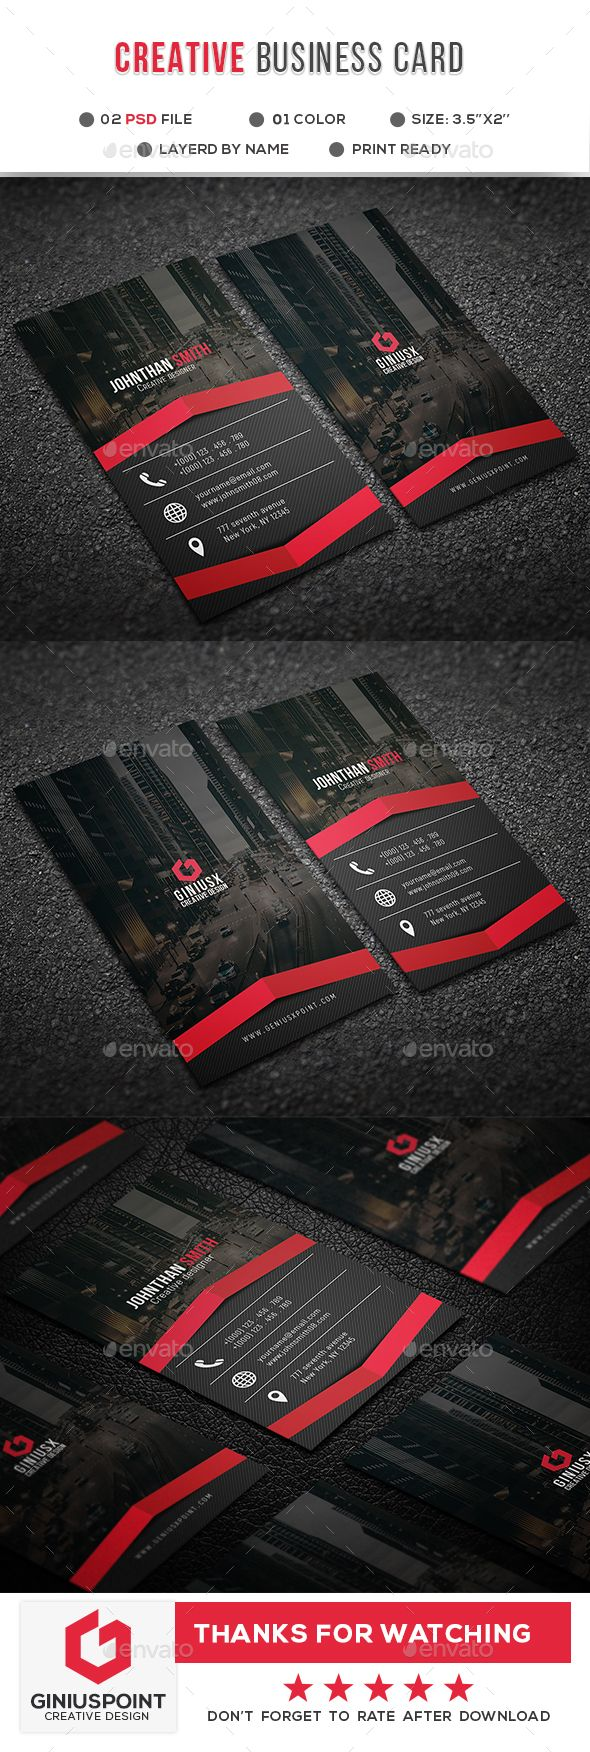 Creative Business Card | Pinterest | Tarjetas, Tarjetas de ...